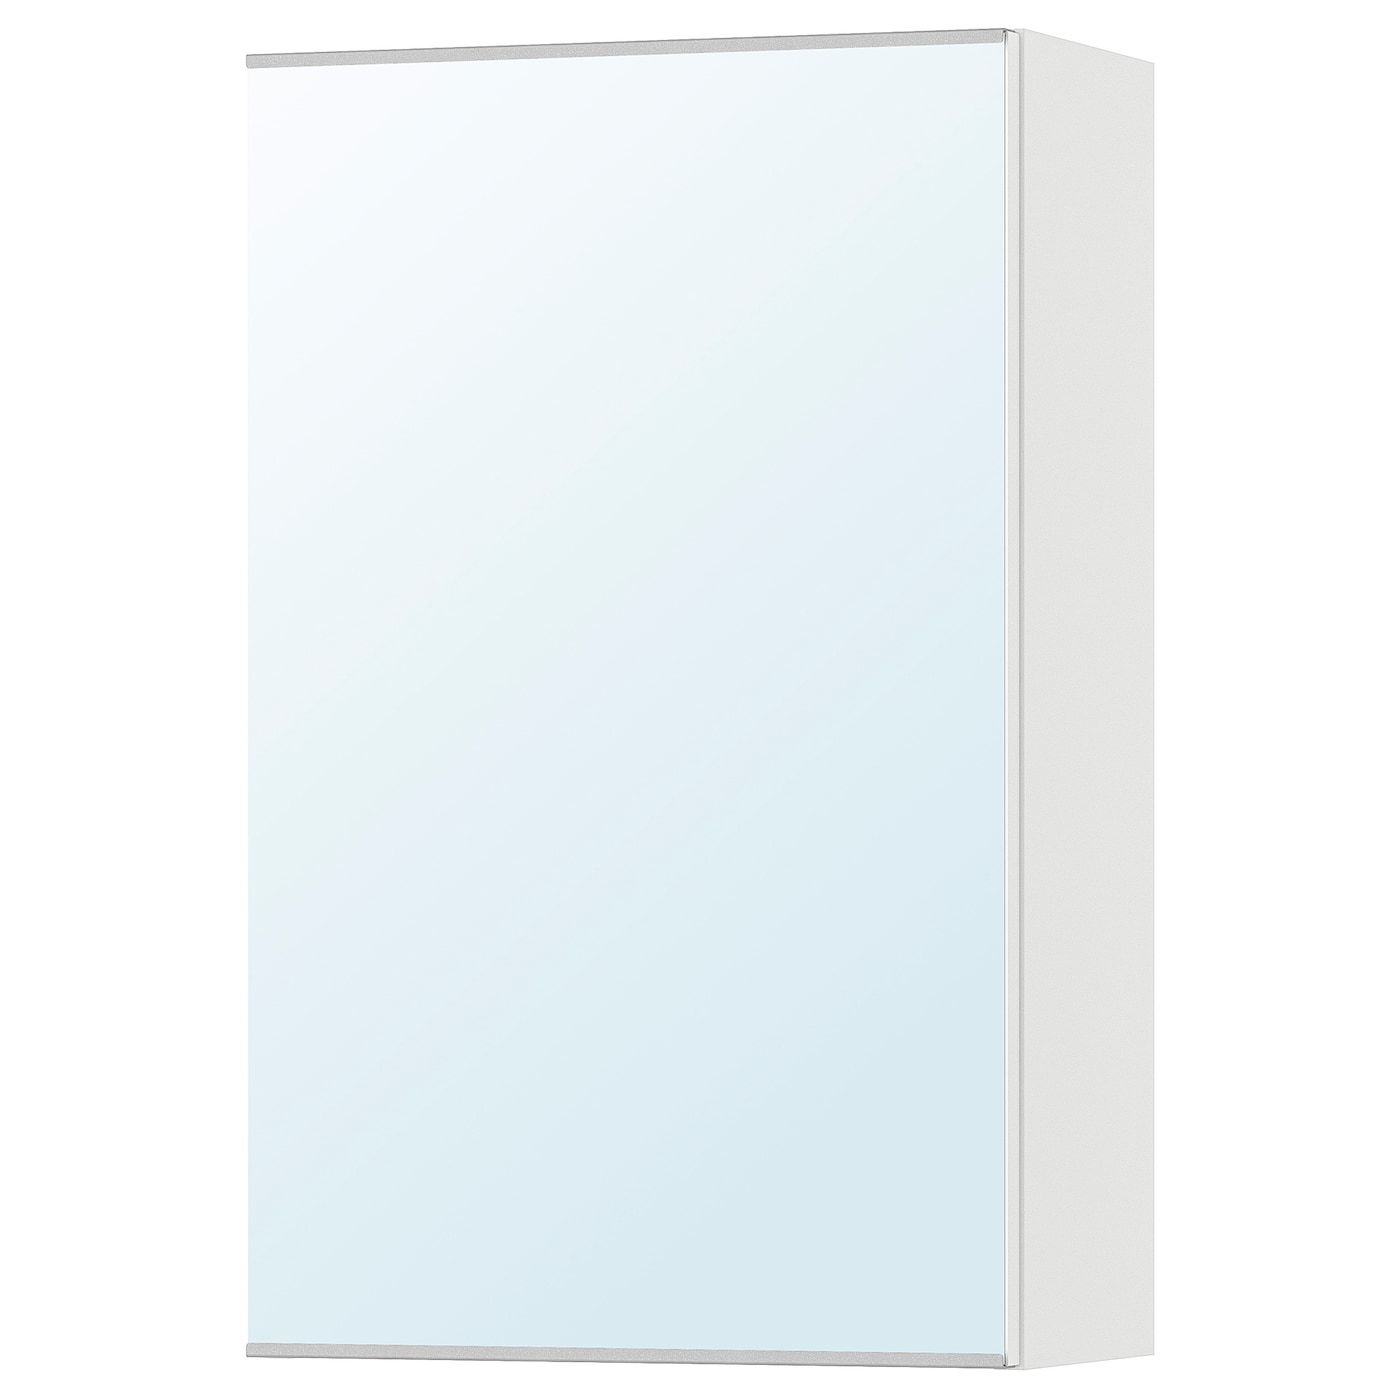 Lillangen Mirror Cabinet With 1 Door White 15 3 4x8 1 4x25 1 4 Ikea In 2020 Mirror Cabinets Bookcase With Glass Doors Mirror